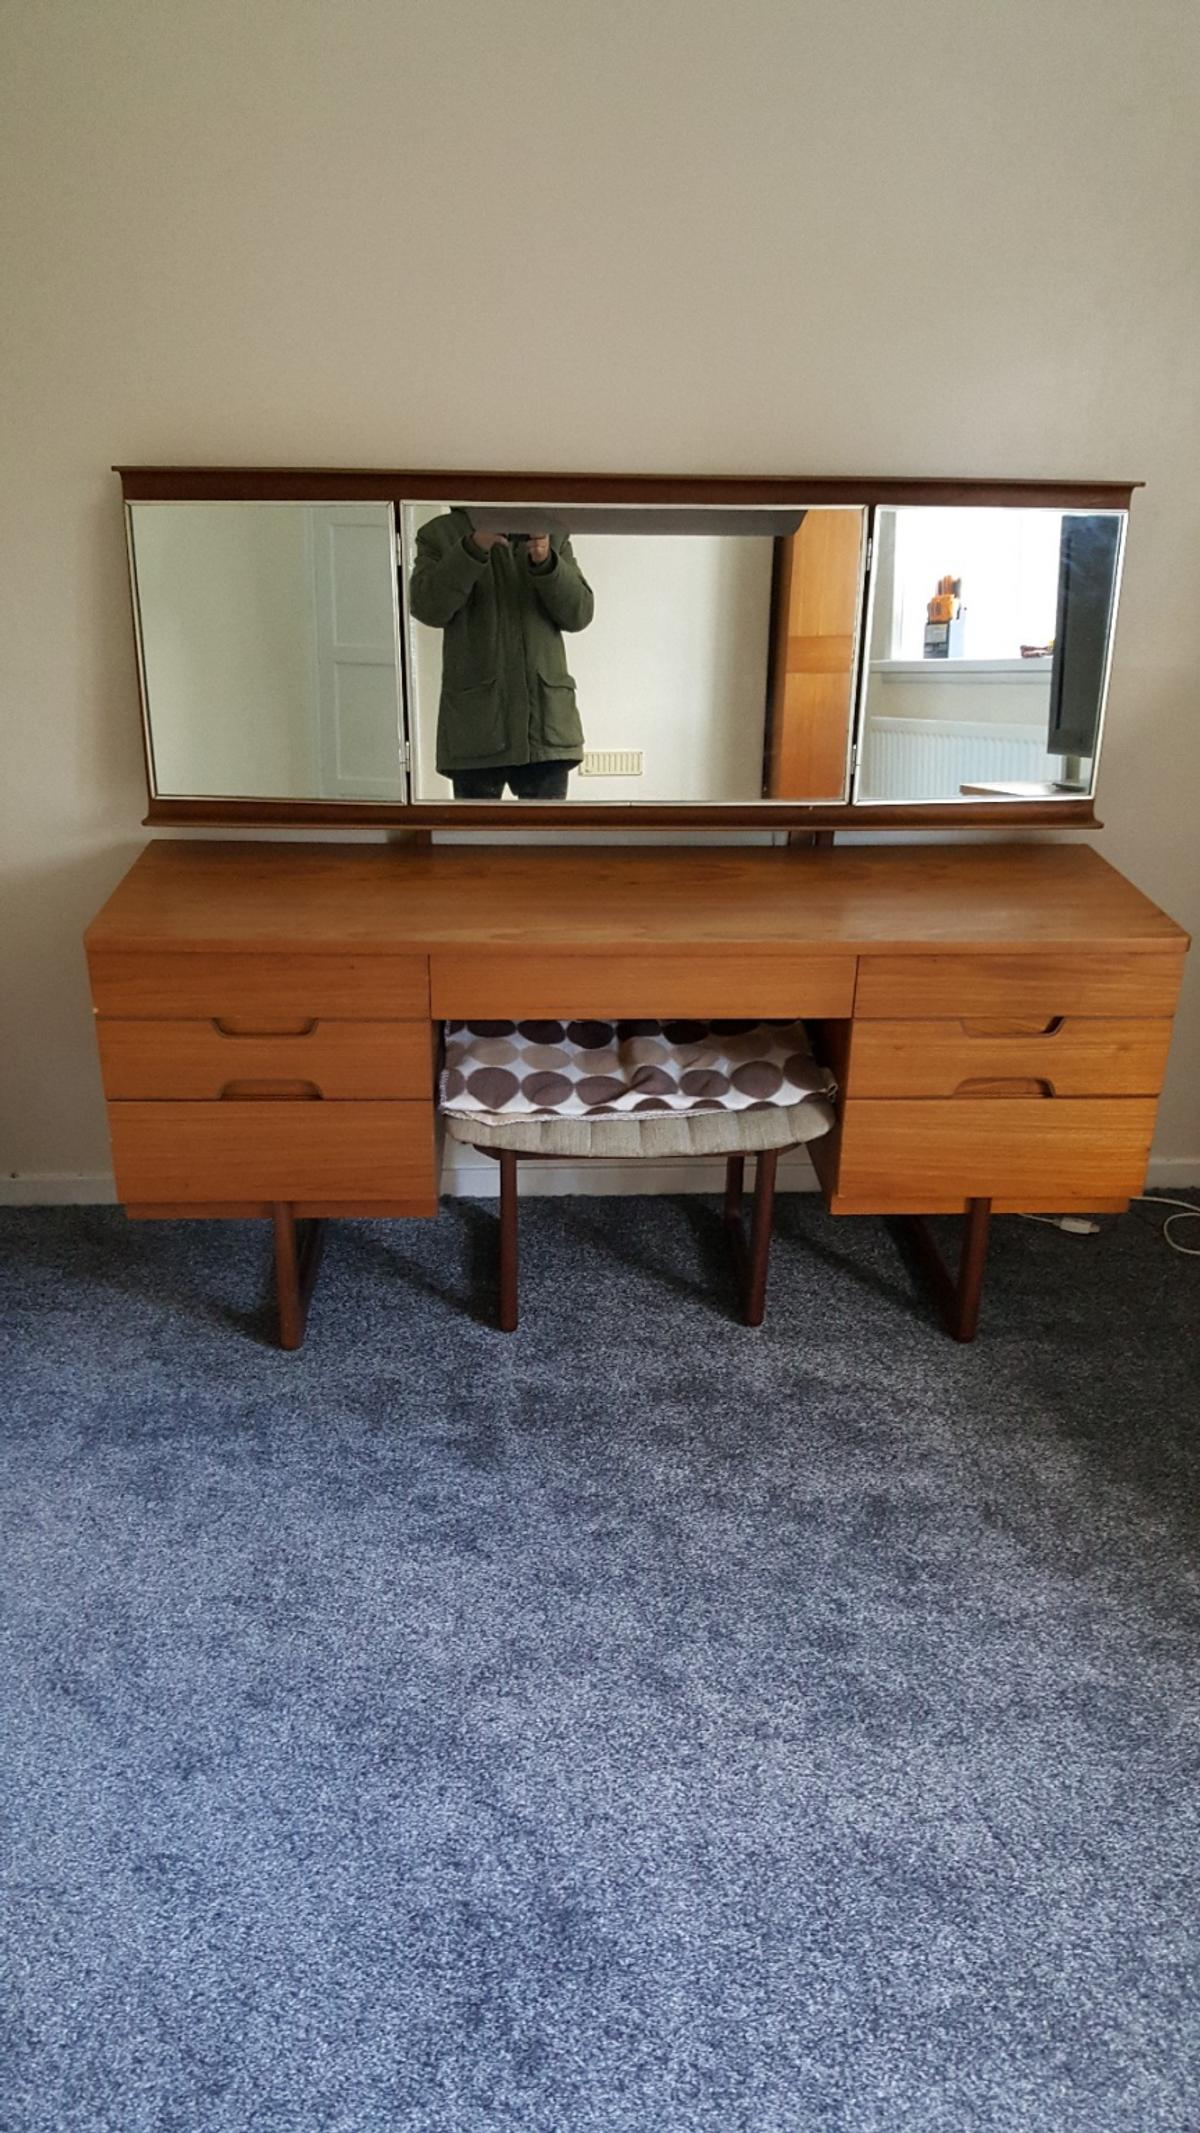 Description 3 Piece Bedroom Furniture Comprising Of Wardrobe Chest Drawers And Dressing Table With Chair Uniflex Vintage 60s